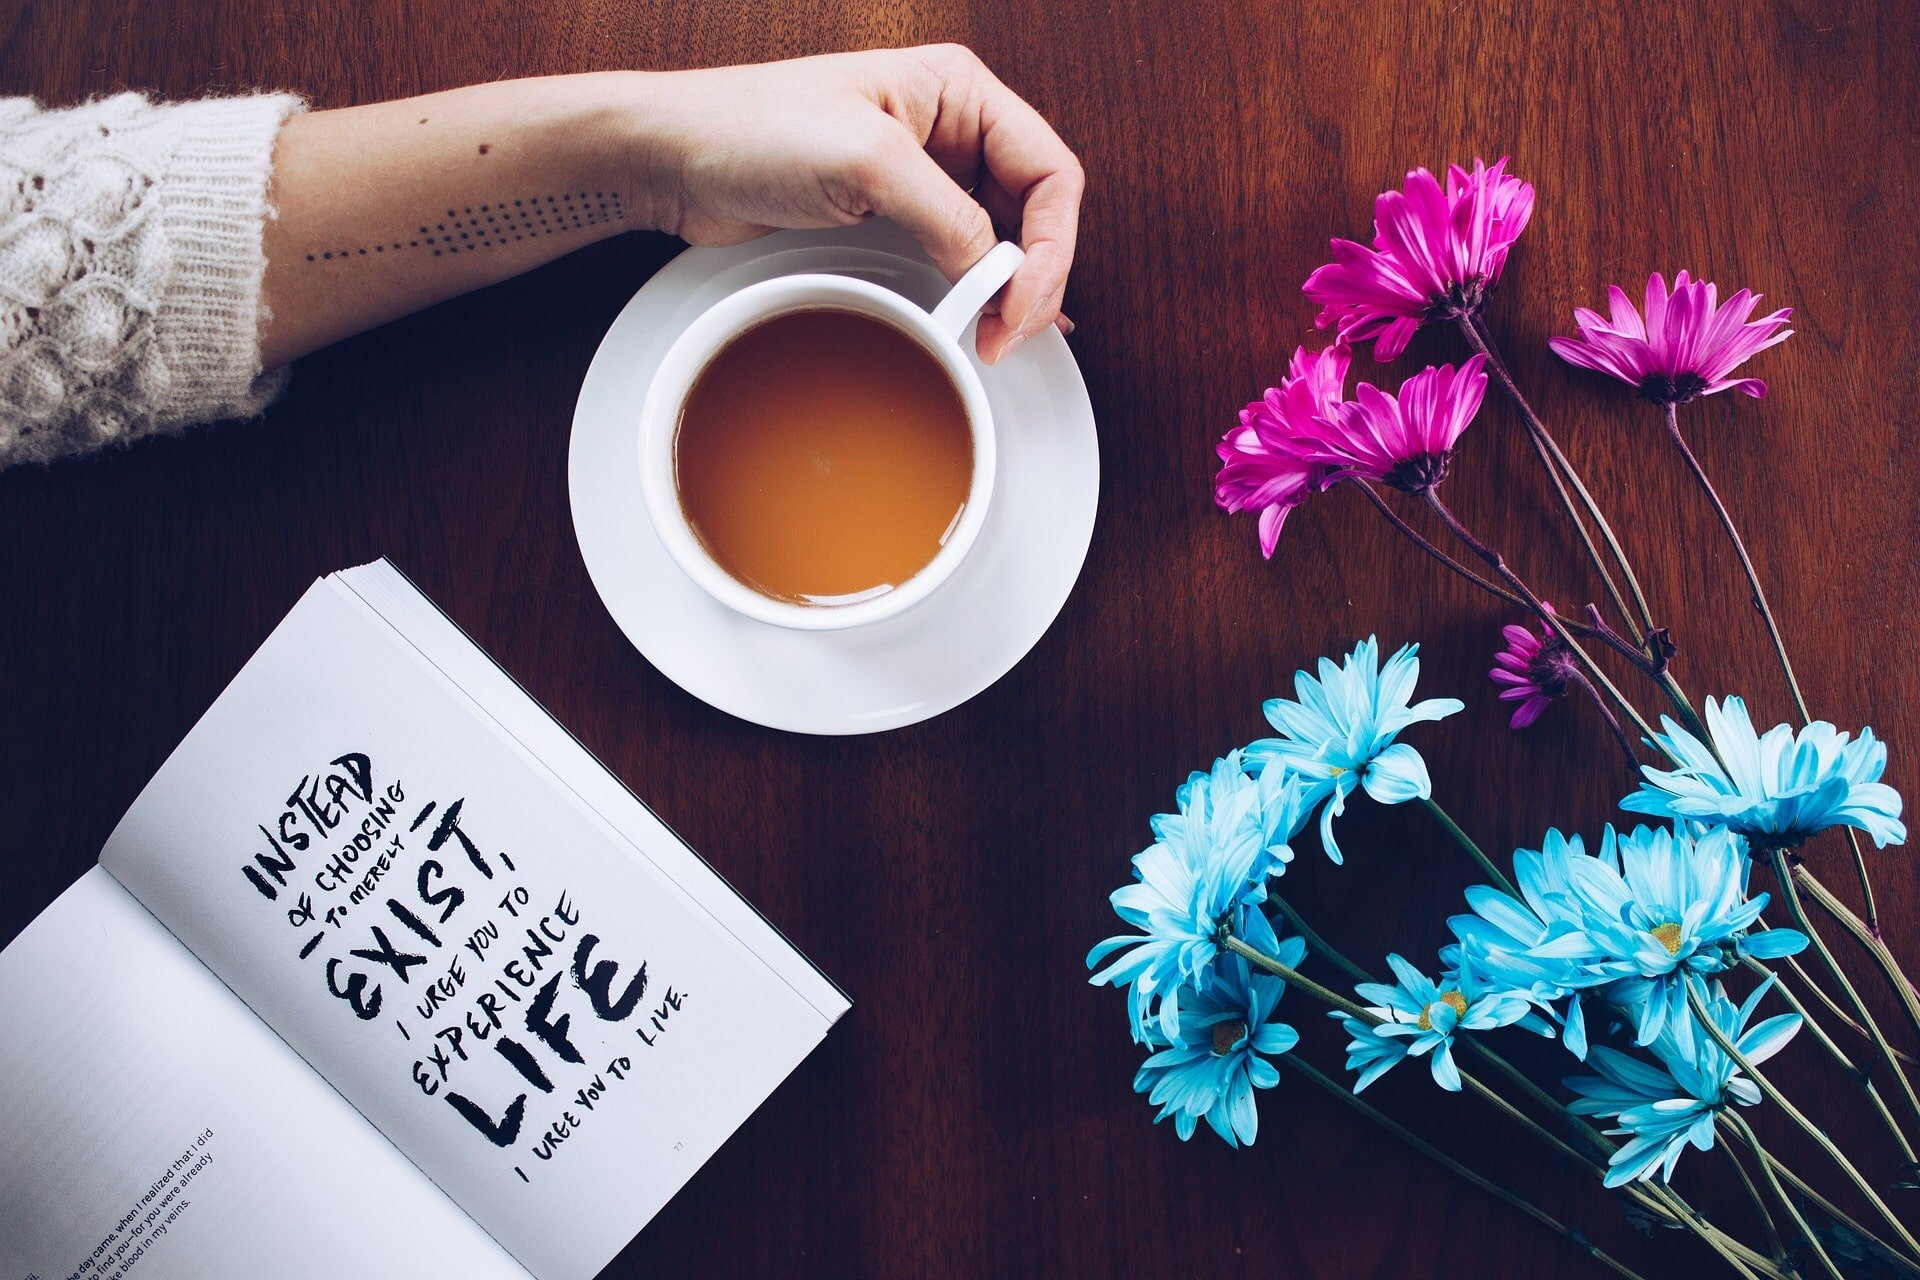 table with open book of quotes, flowers and tea